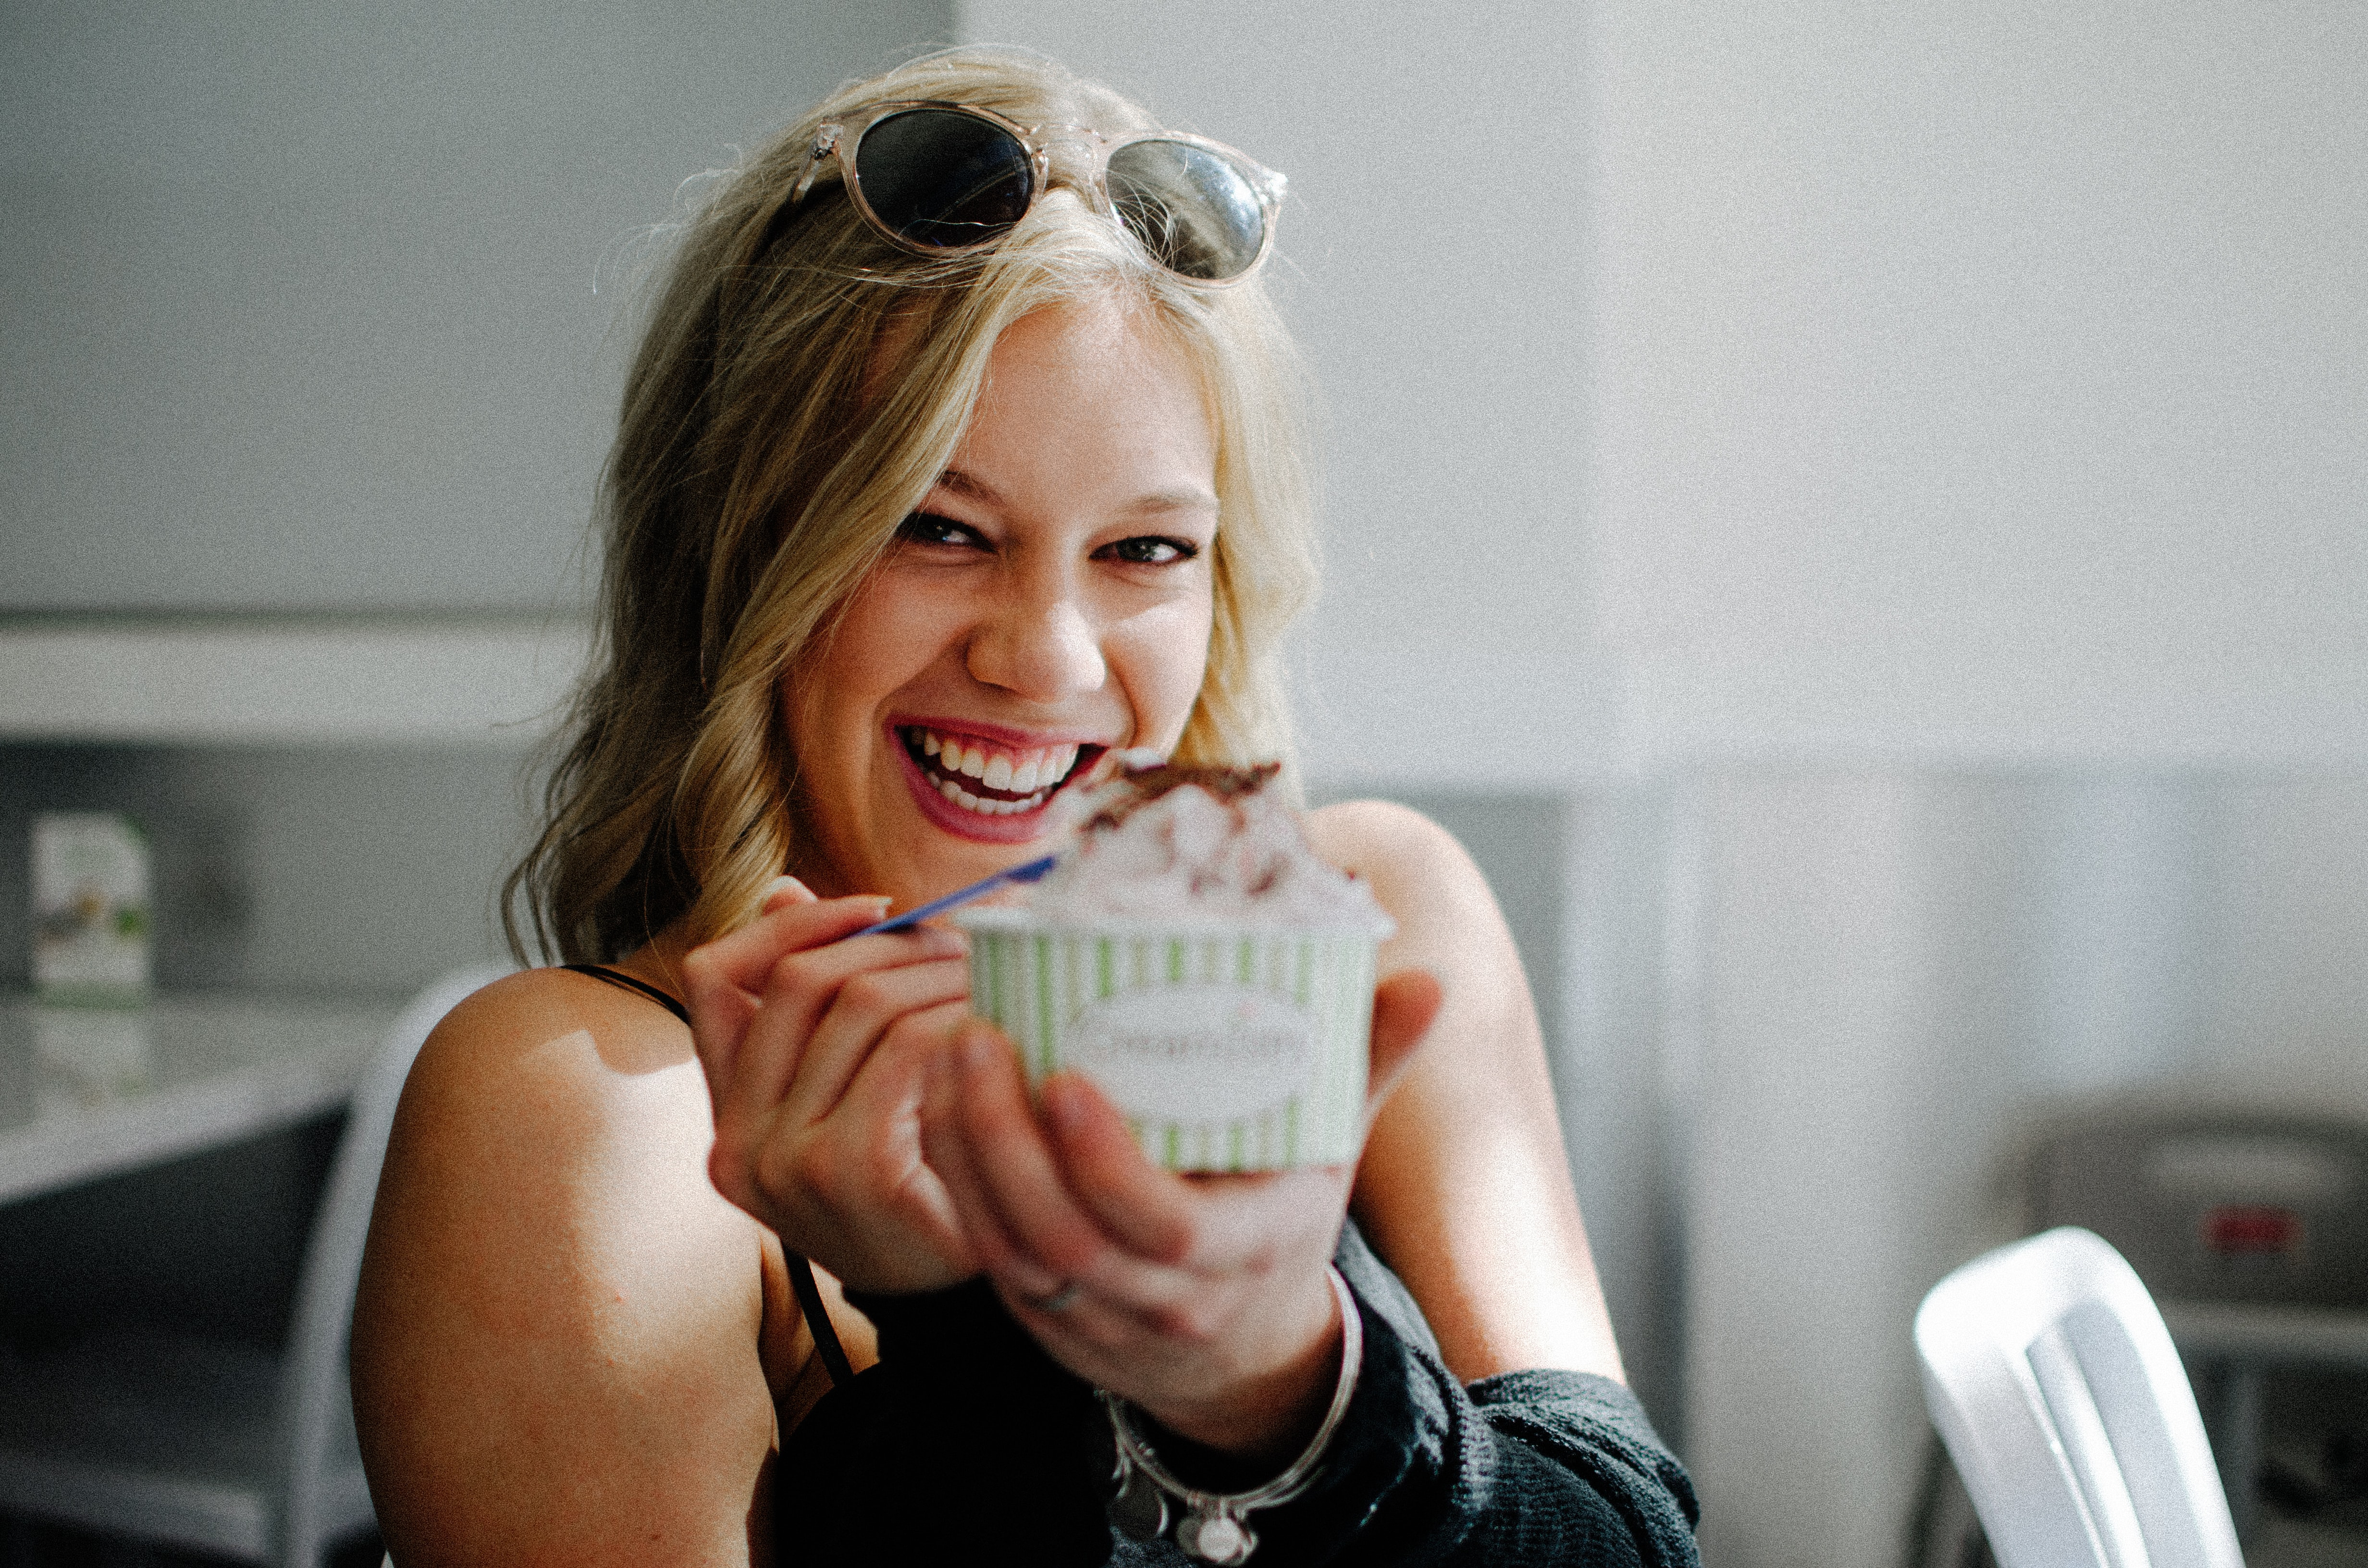 woman in black top holding disposable cup